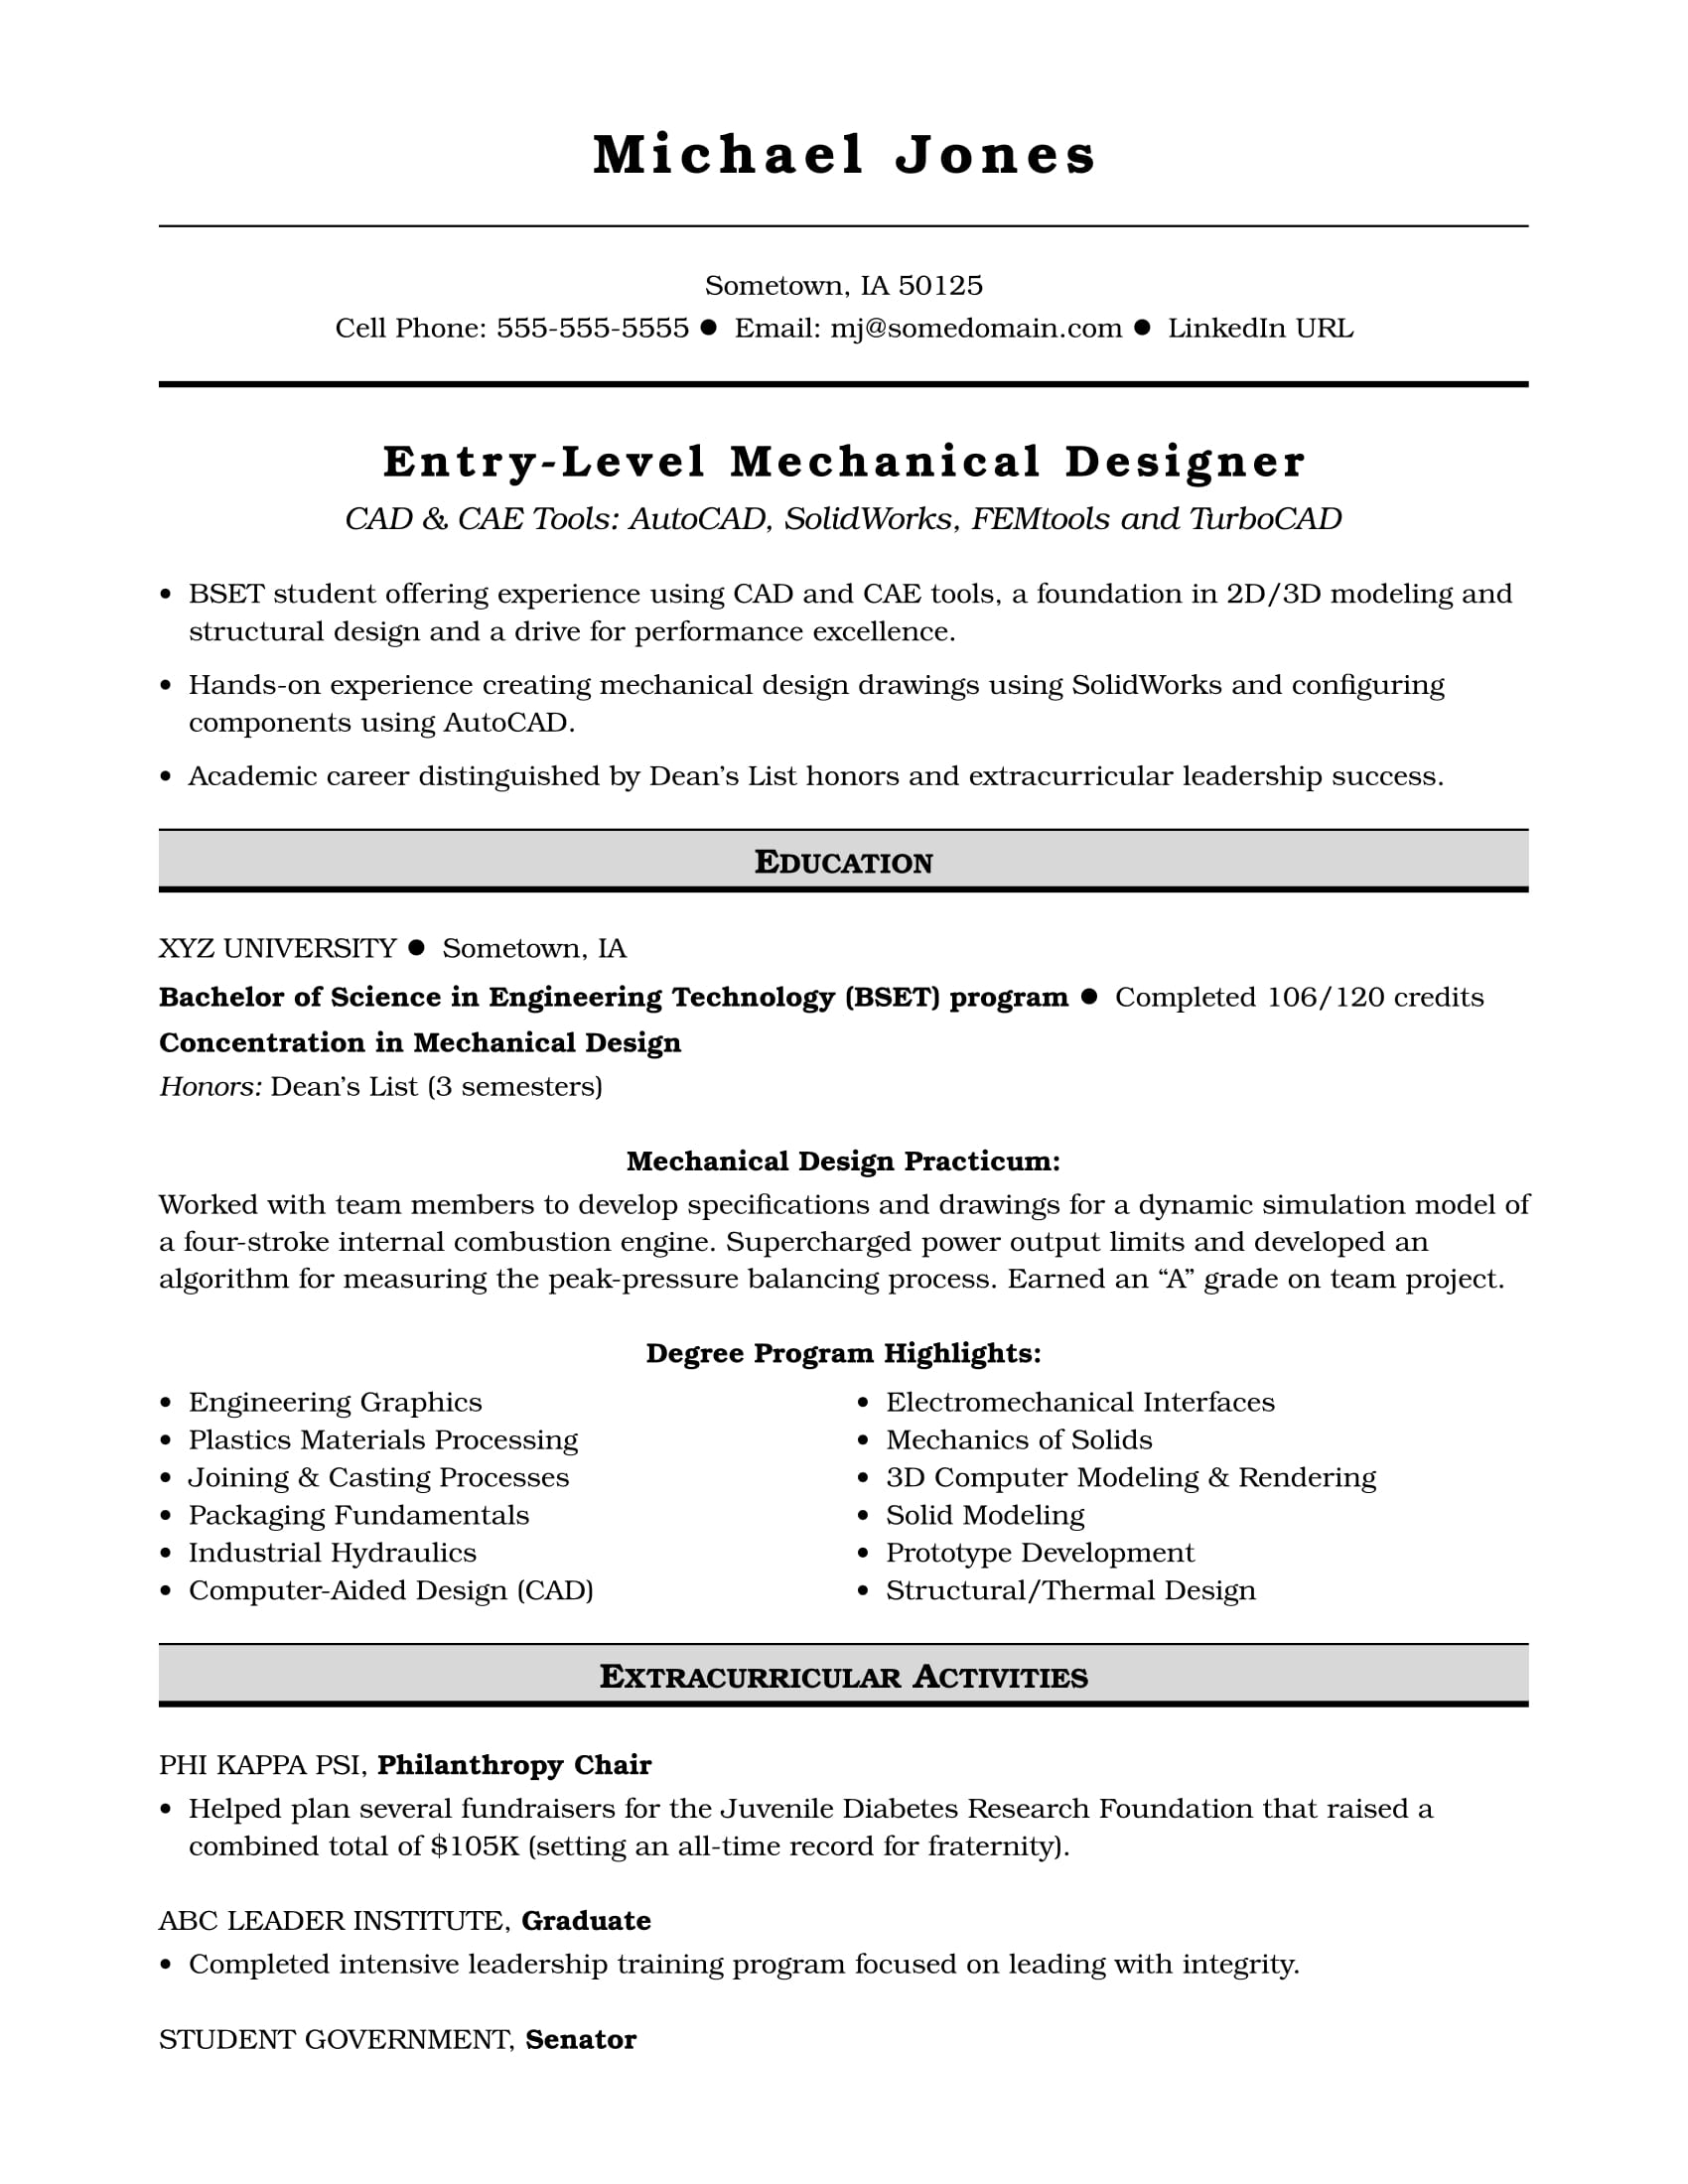 sample resume for an entry level mechanical designer monster com